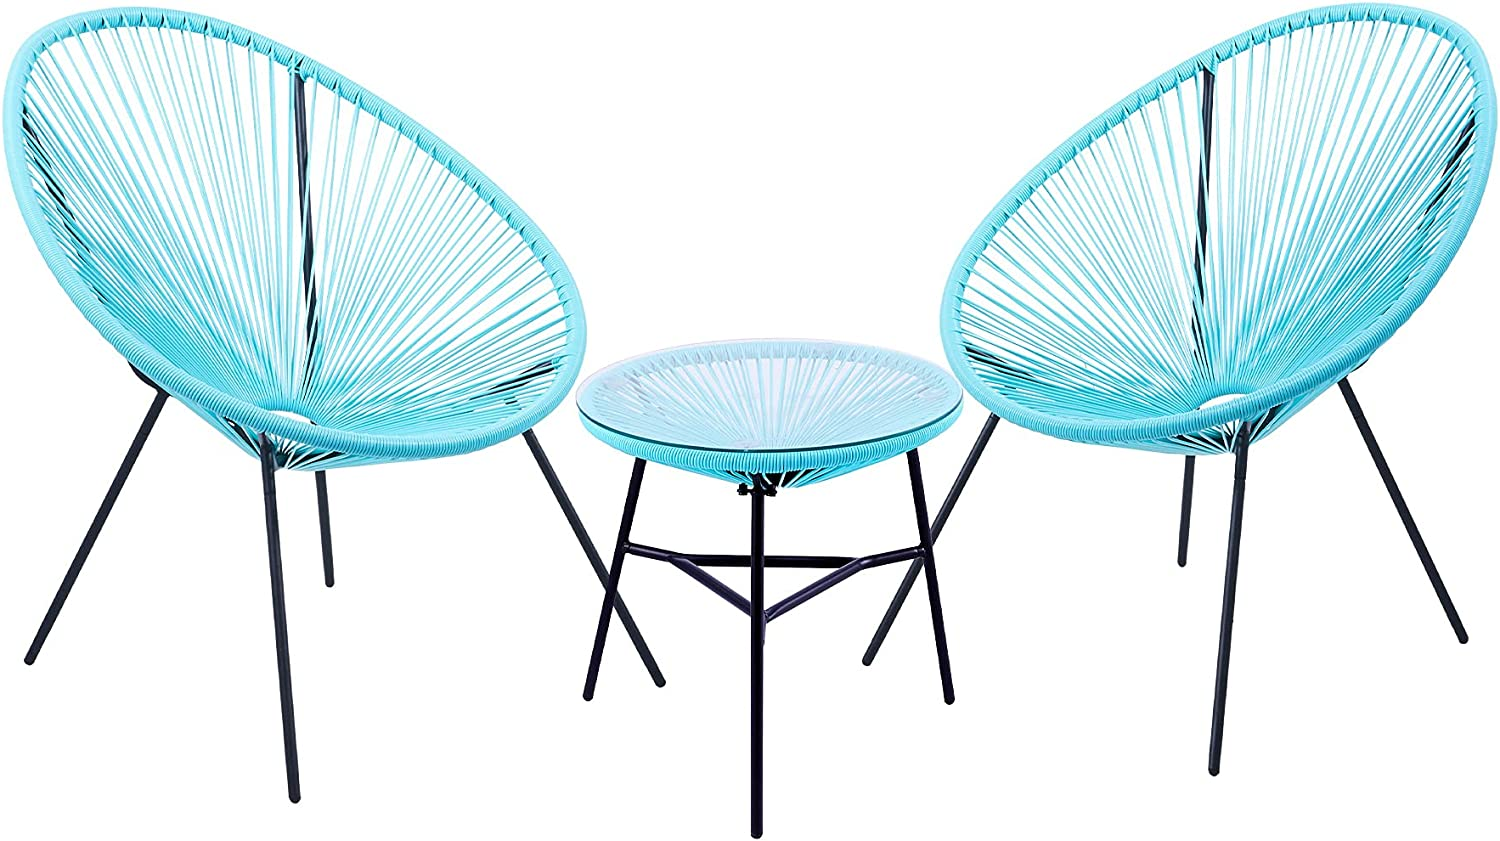 VONLUCE 3 Piece Outdoor Patio Furniture Set, Acapulco Chair Set with Glass Top Coffee Table, All Weather PE Rattan Bistro Set for Garden Poolside Balcony Patio Seating and Decor, 330lb Capacity, Blue